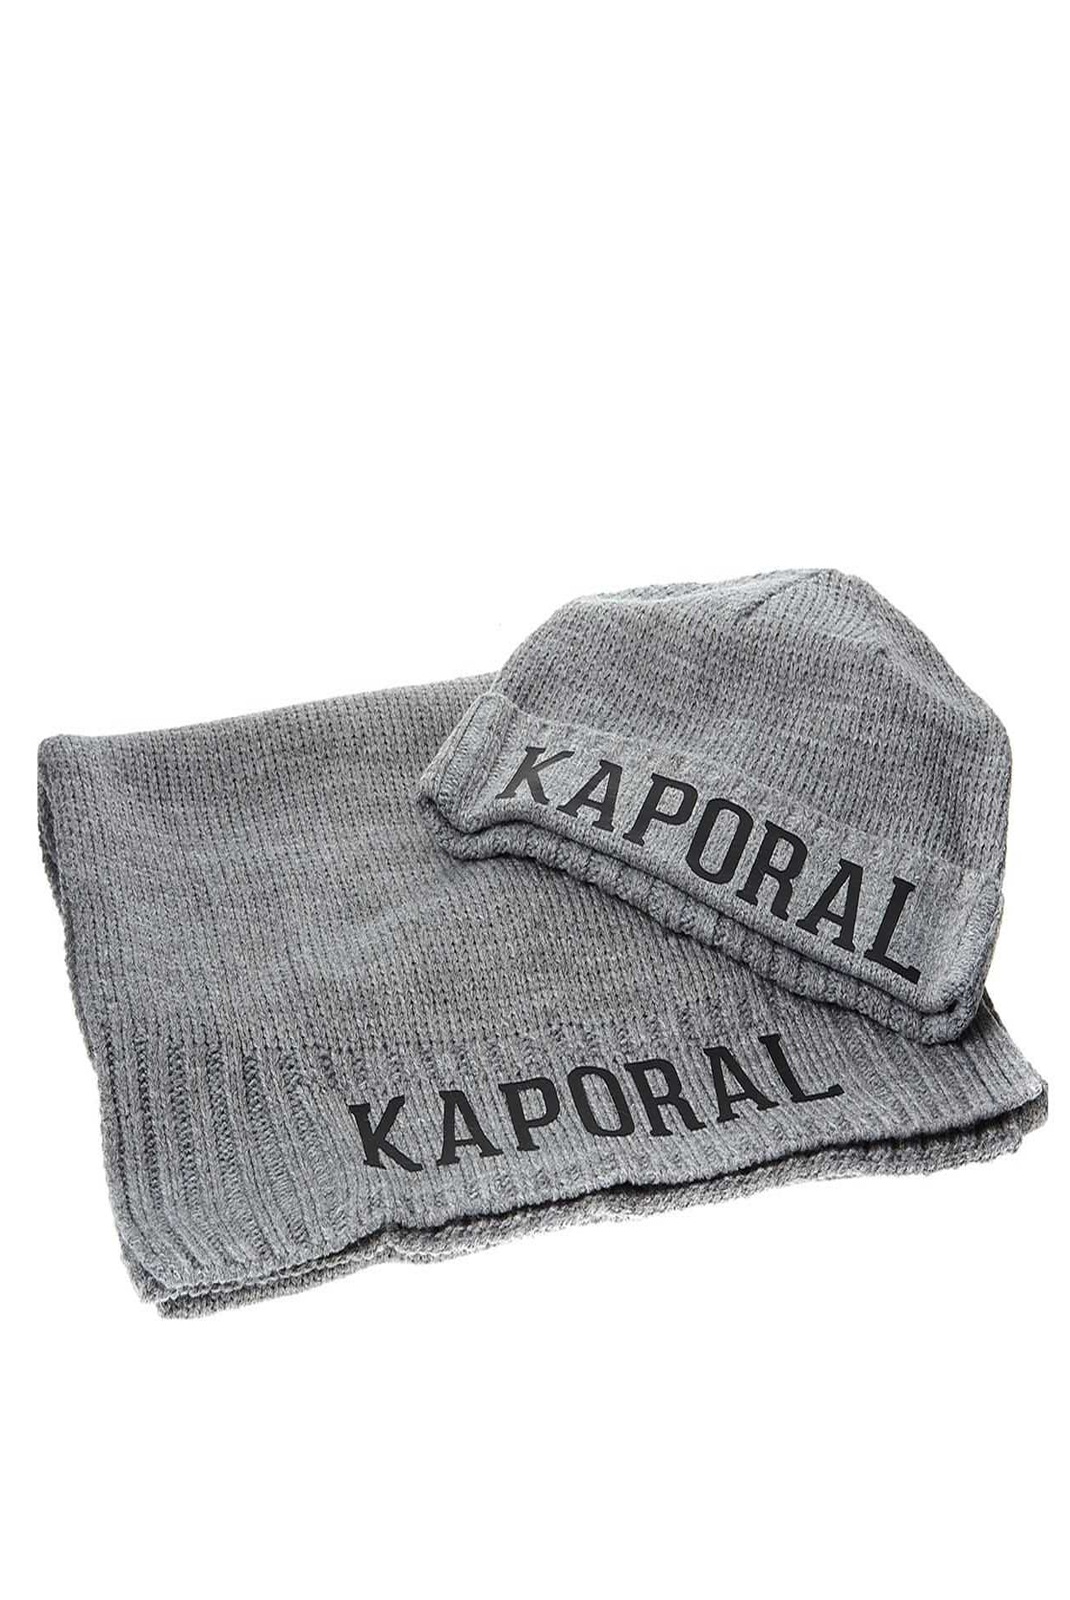 Bonnets / Casquettes  Kaporal BACK H18M08 MEDIUM GREY CHINE